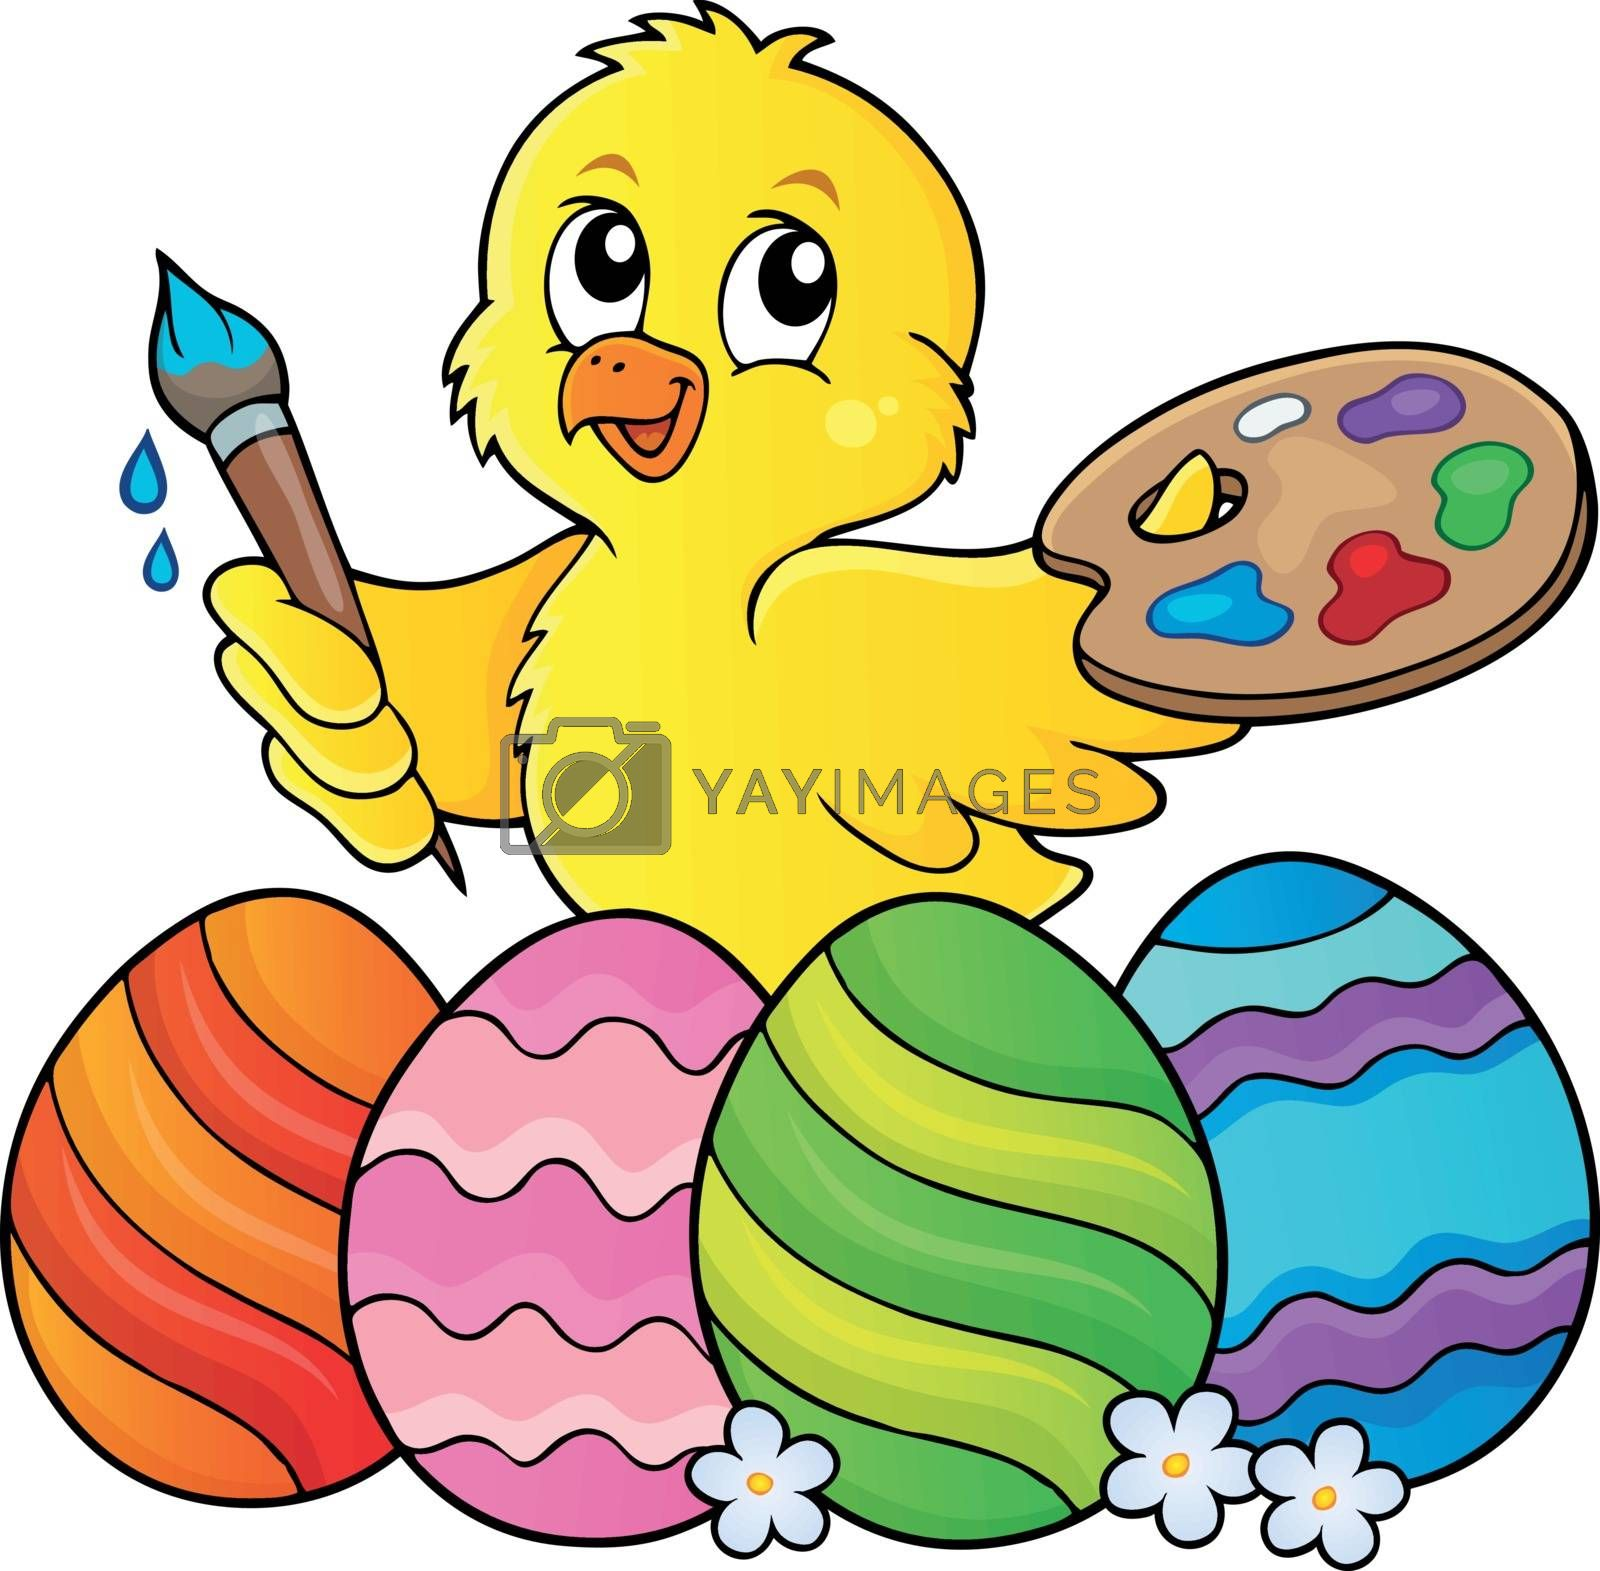 Easter eggs and chicken painter topic 1 - eps10 vector illustration.